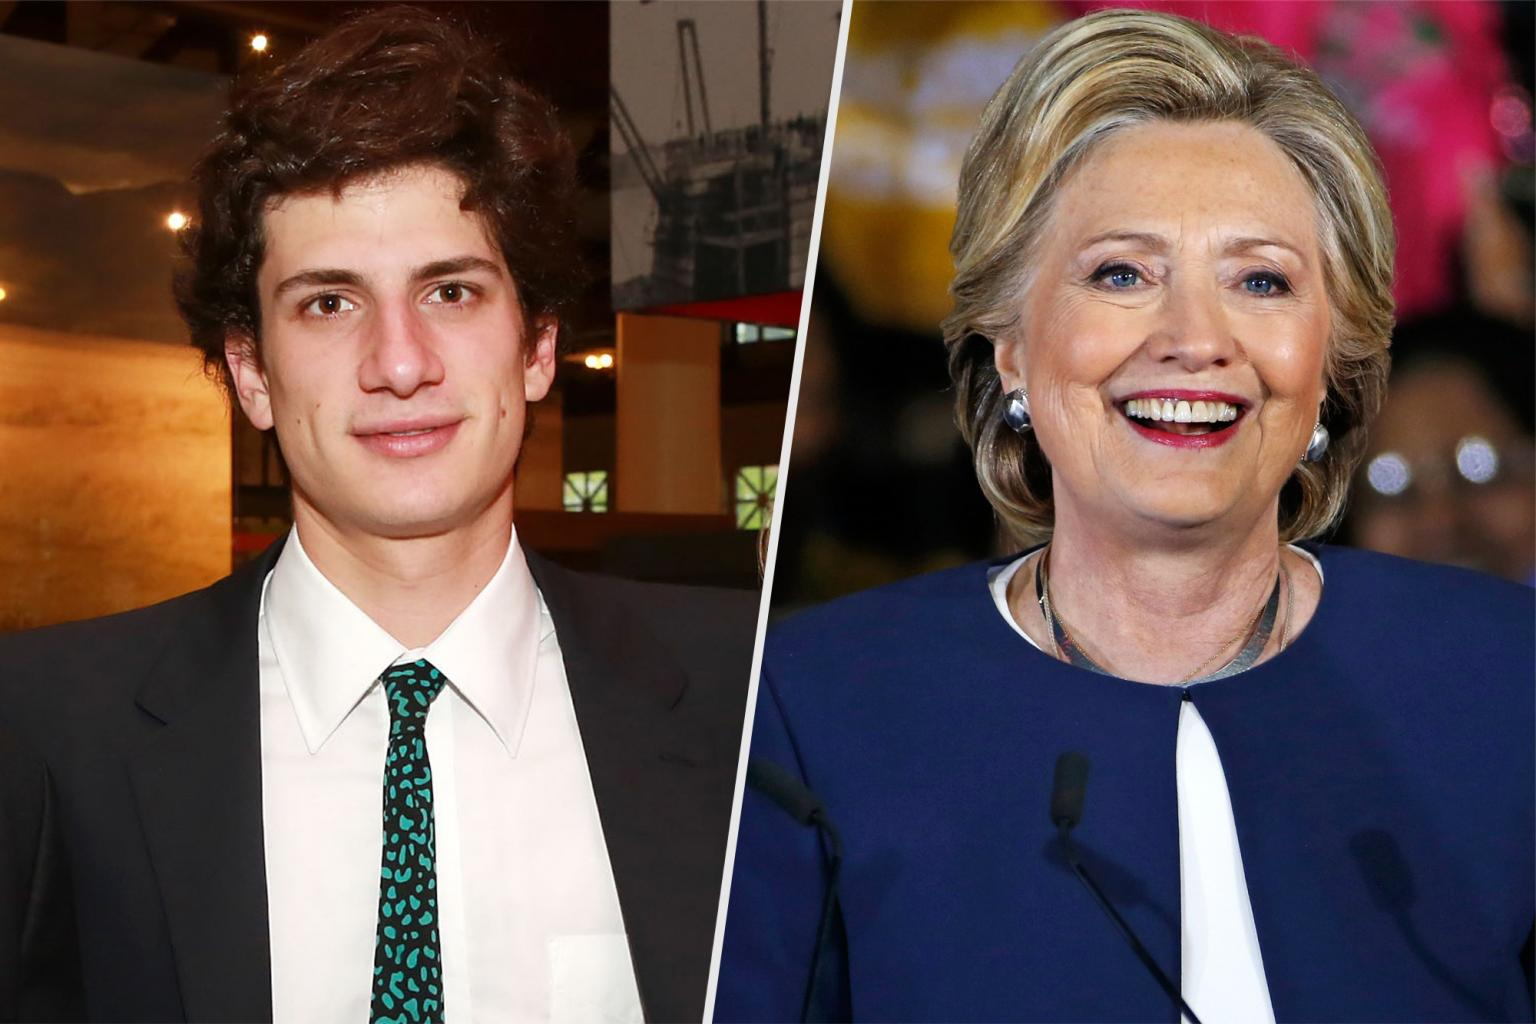 JFK       's Grandson Jack Schlossberg Endorses Hillary Clinton:        She Is Our Candidate